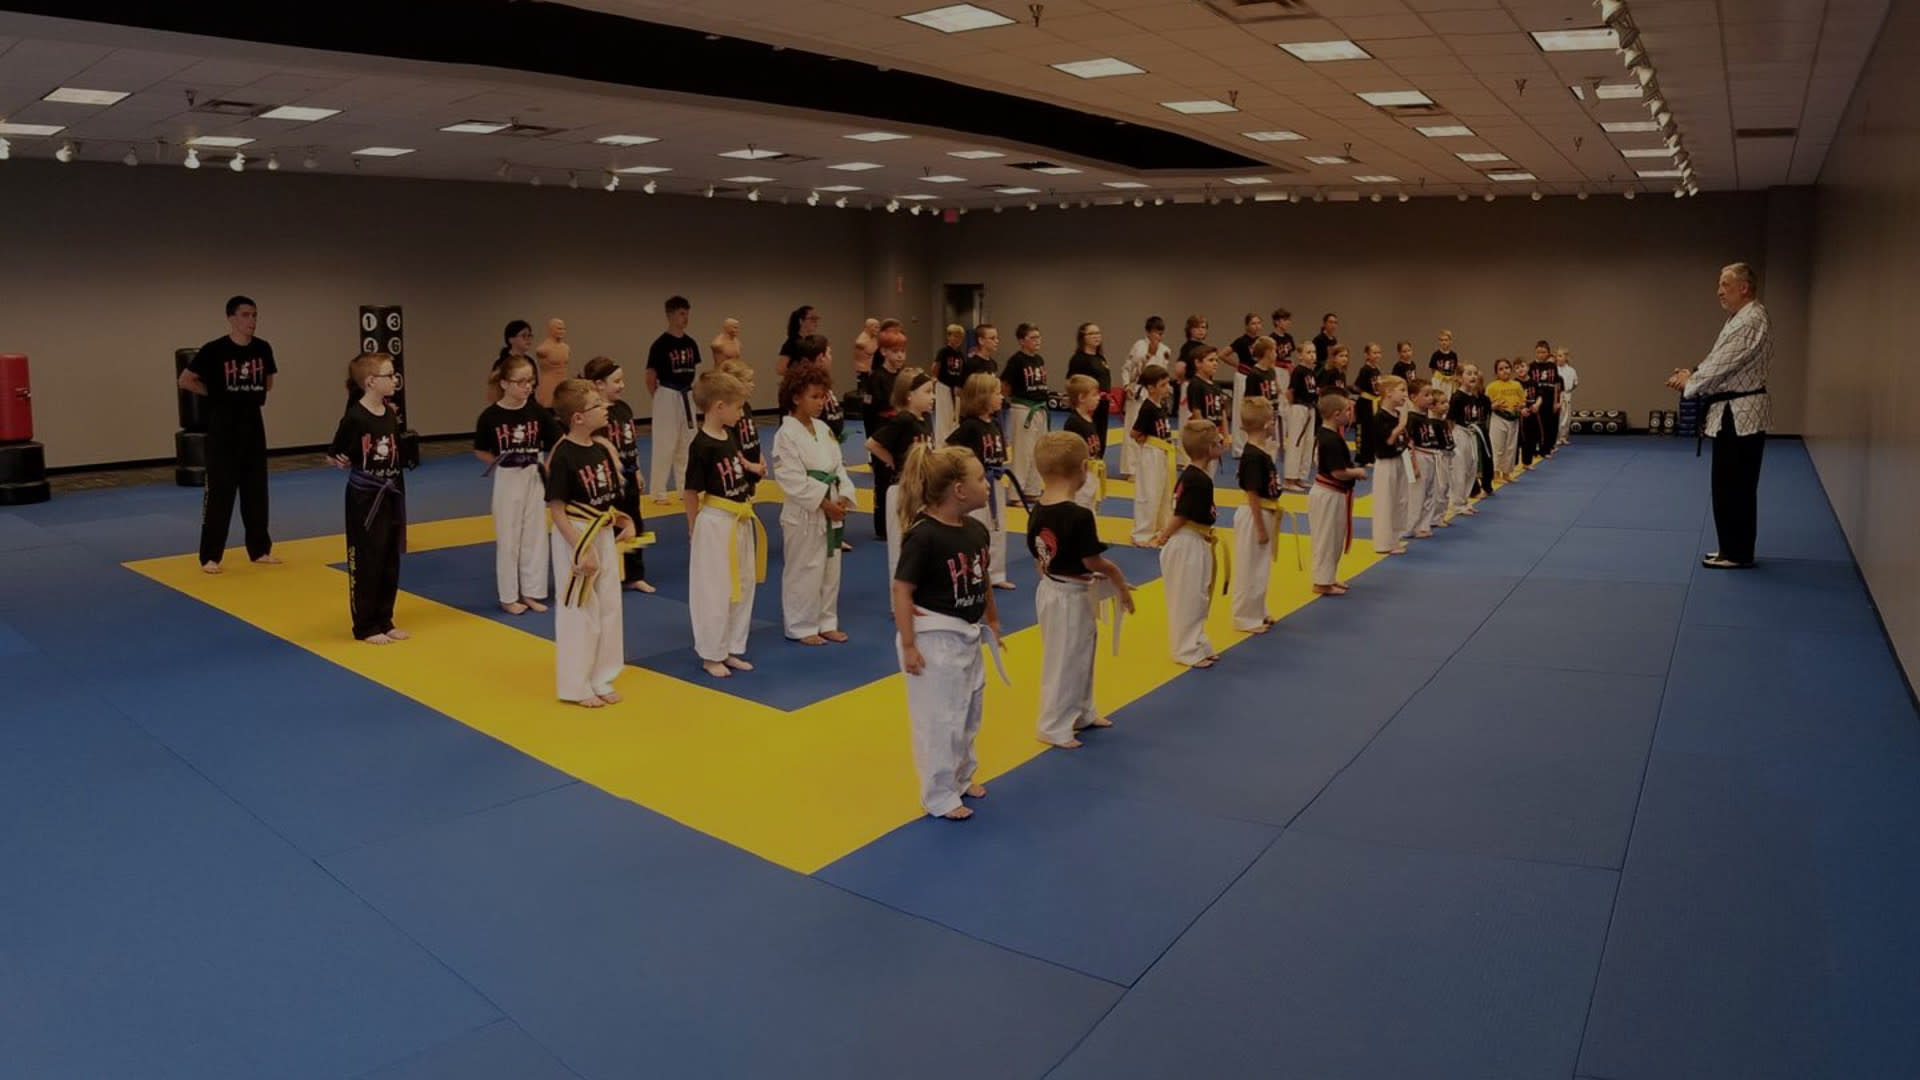 "<span style=""color:#fff;"">Join Us Today For Exciting Martial Arts Instruction The Whole Family Can Enjoy!</span>"